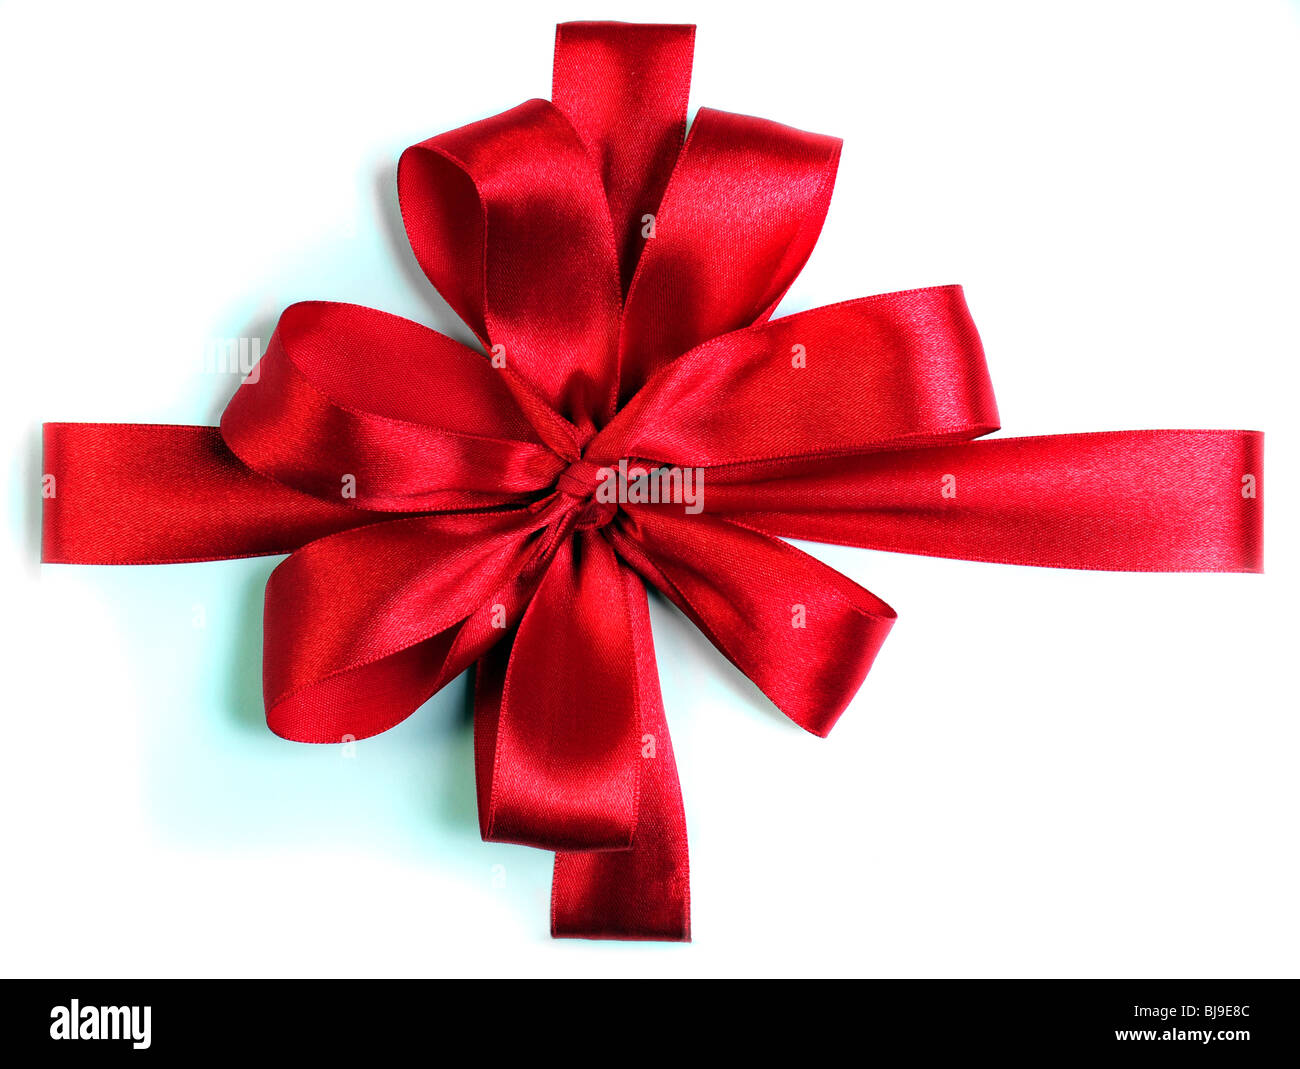 red ribbon bow on white background - Stock Image